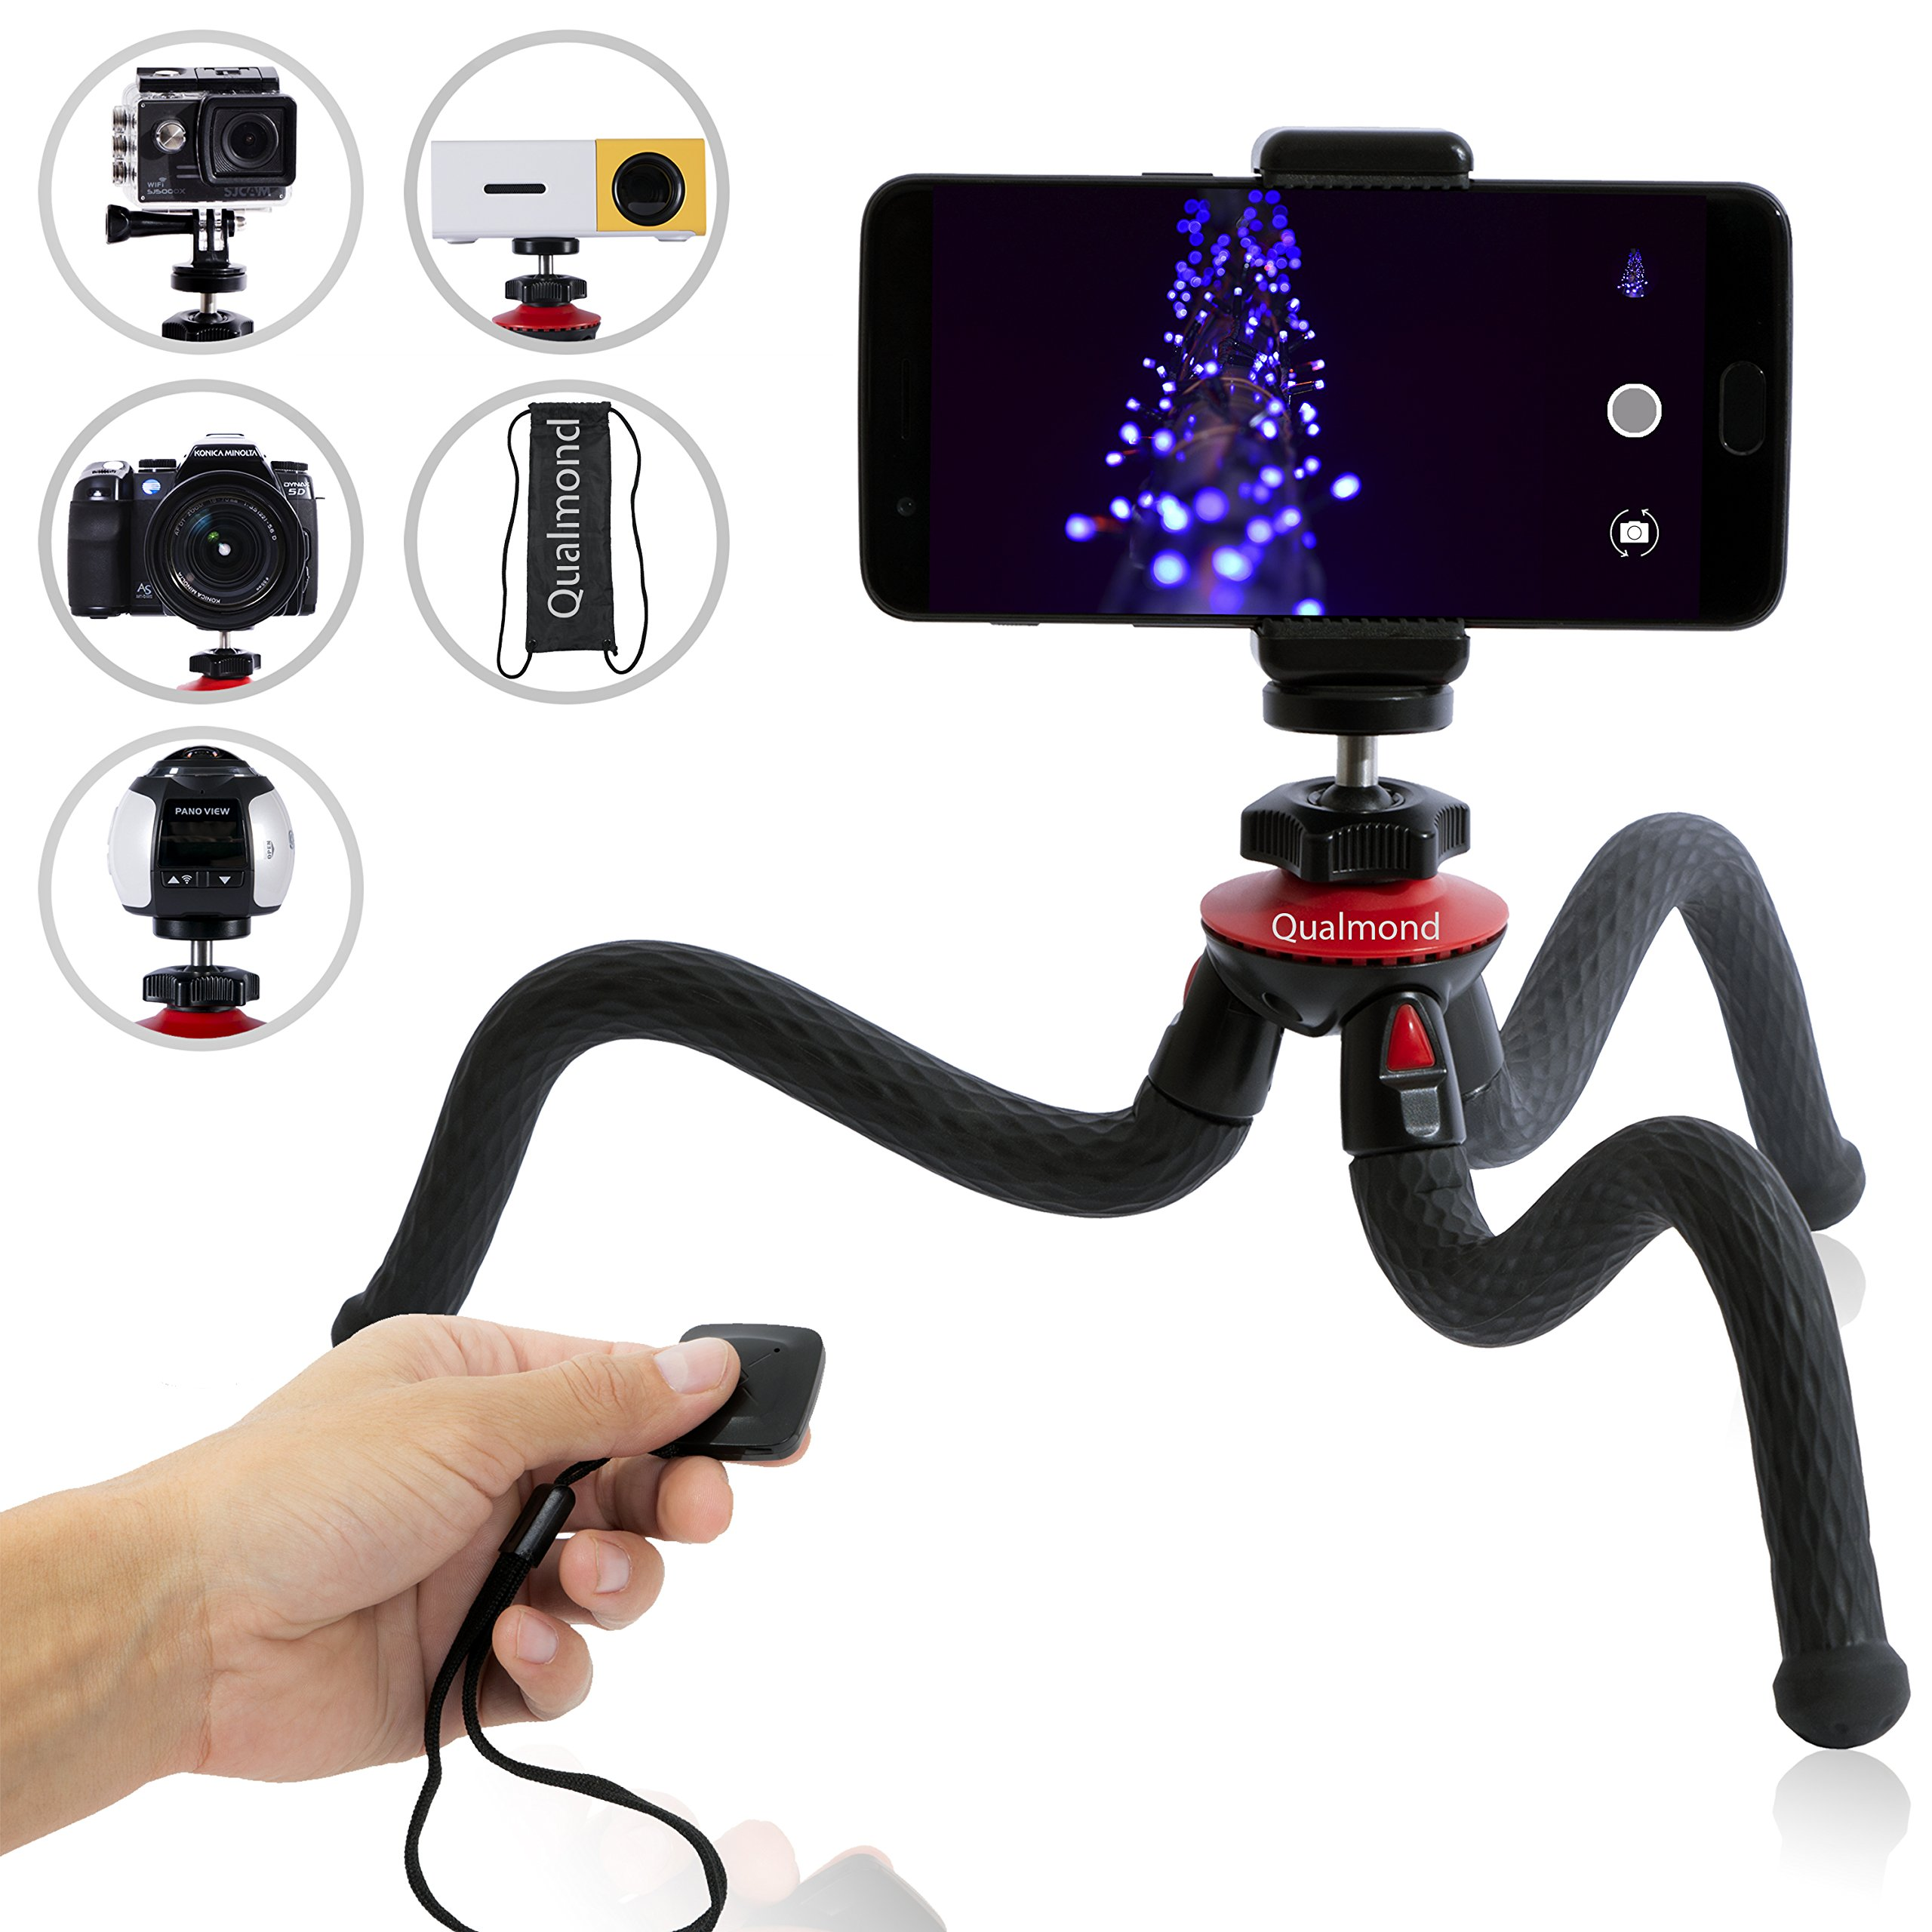 Qualmond Universal Flexible Tripod: Phone, Camera, Gopro Tripod Adapters For Iphone, DSLR, Smartphone-Sturdy,Lightweight, Handy Tripod Stand w/Bluetooth Remote Control-Octopus Style, Black&Red